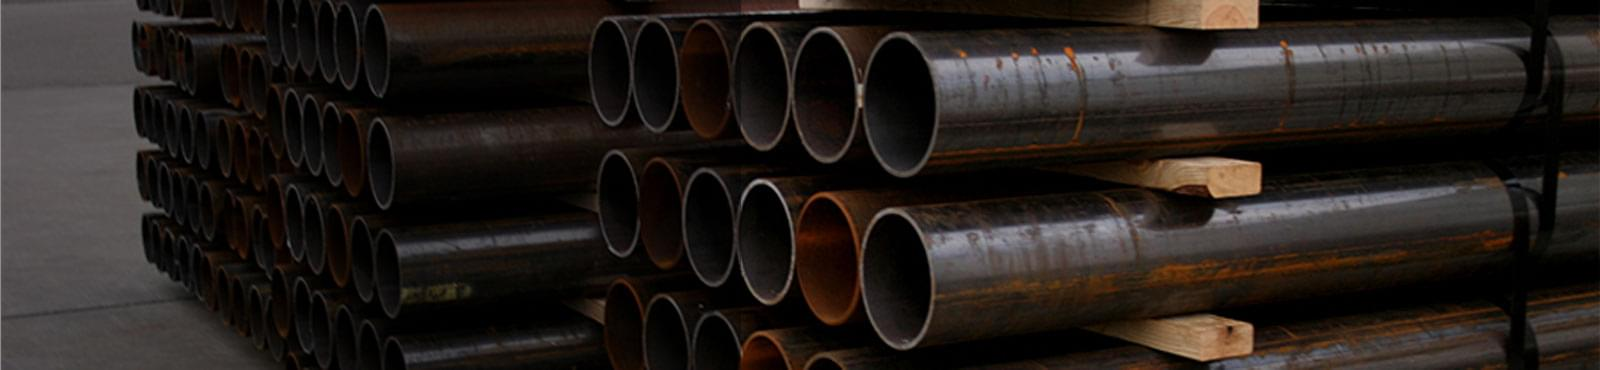 product-head-steel-pipe